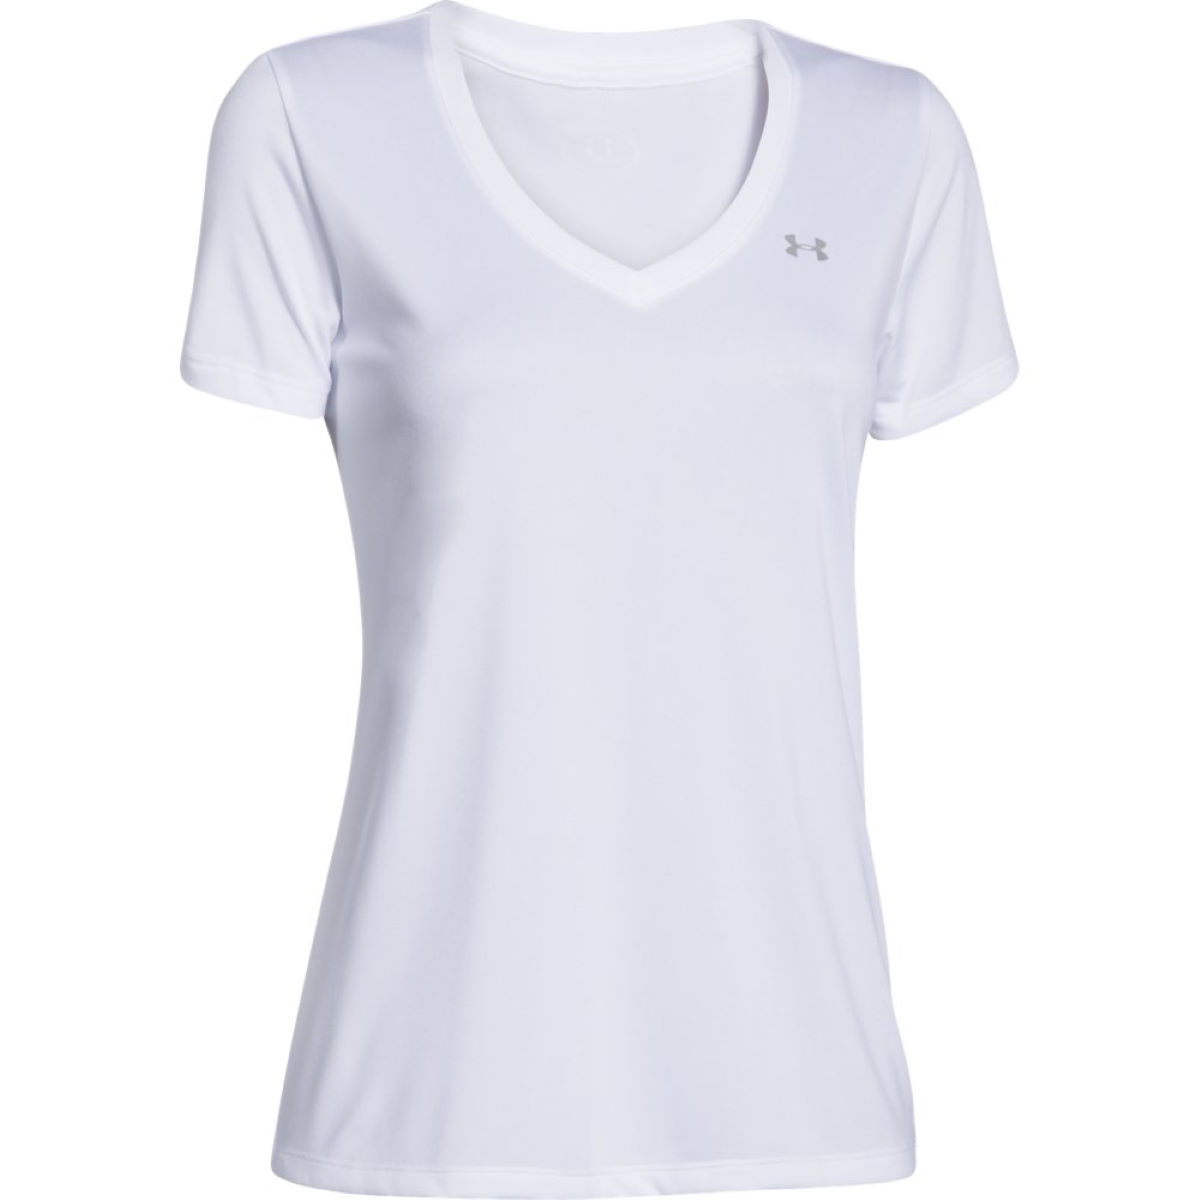 Maillot Femme Under Armour Tech (col en V, manches courtes) - XS